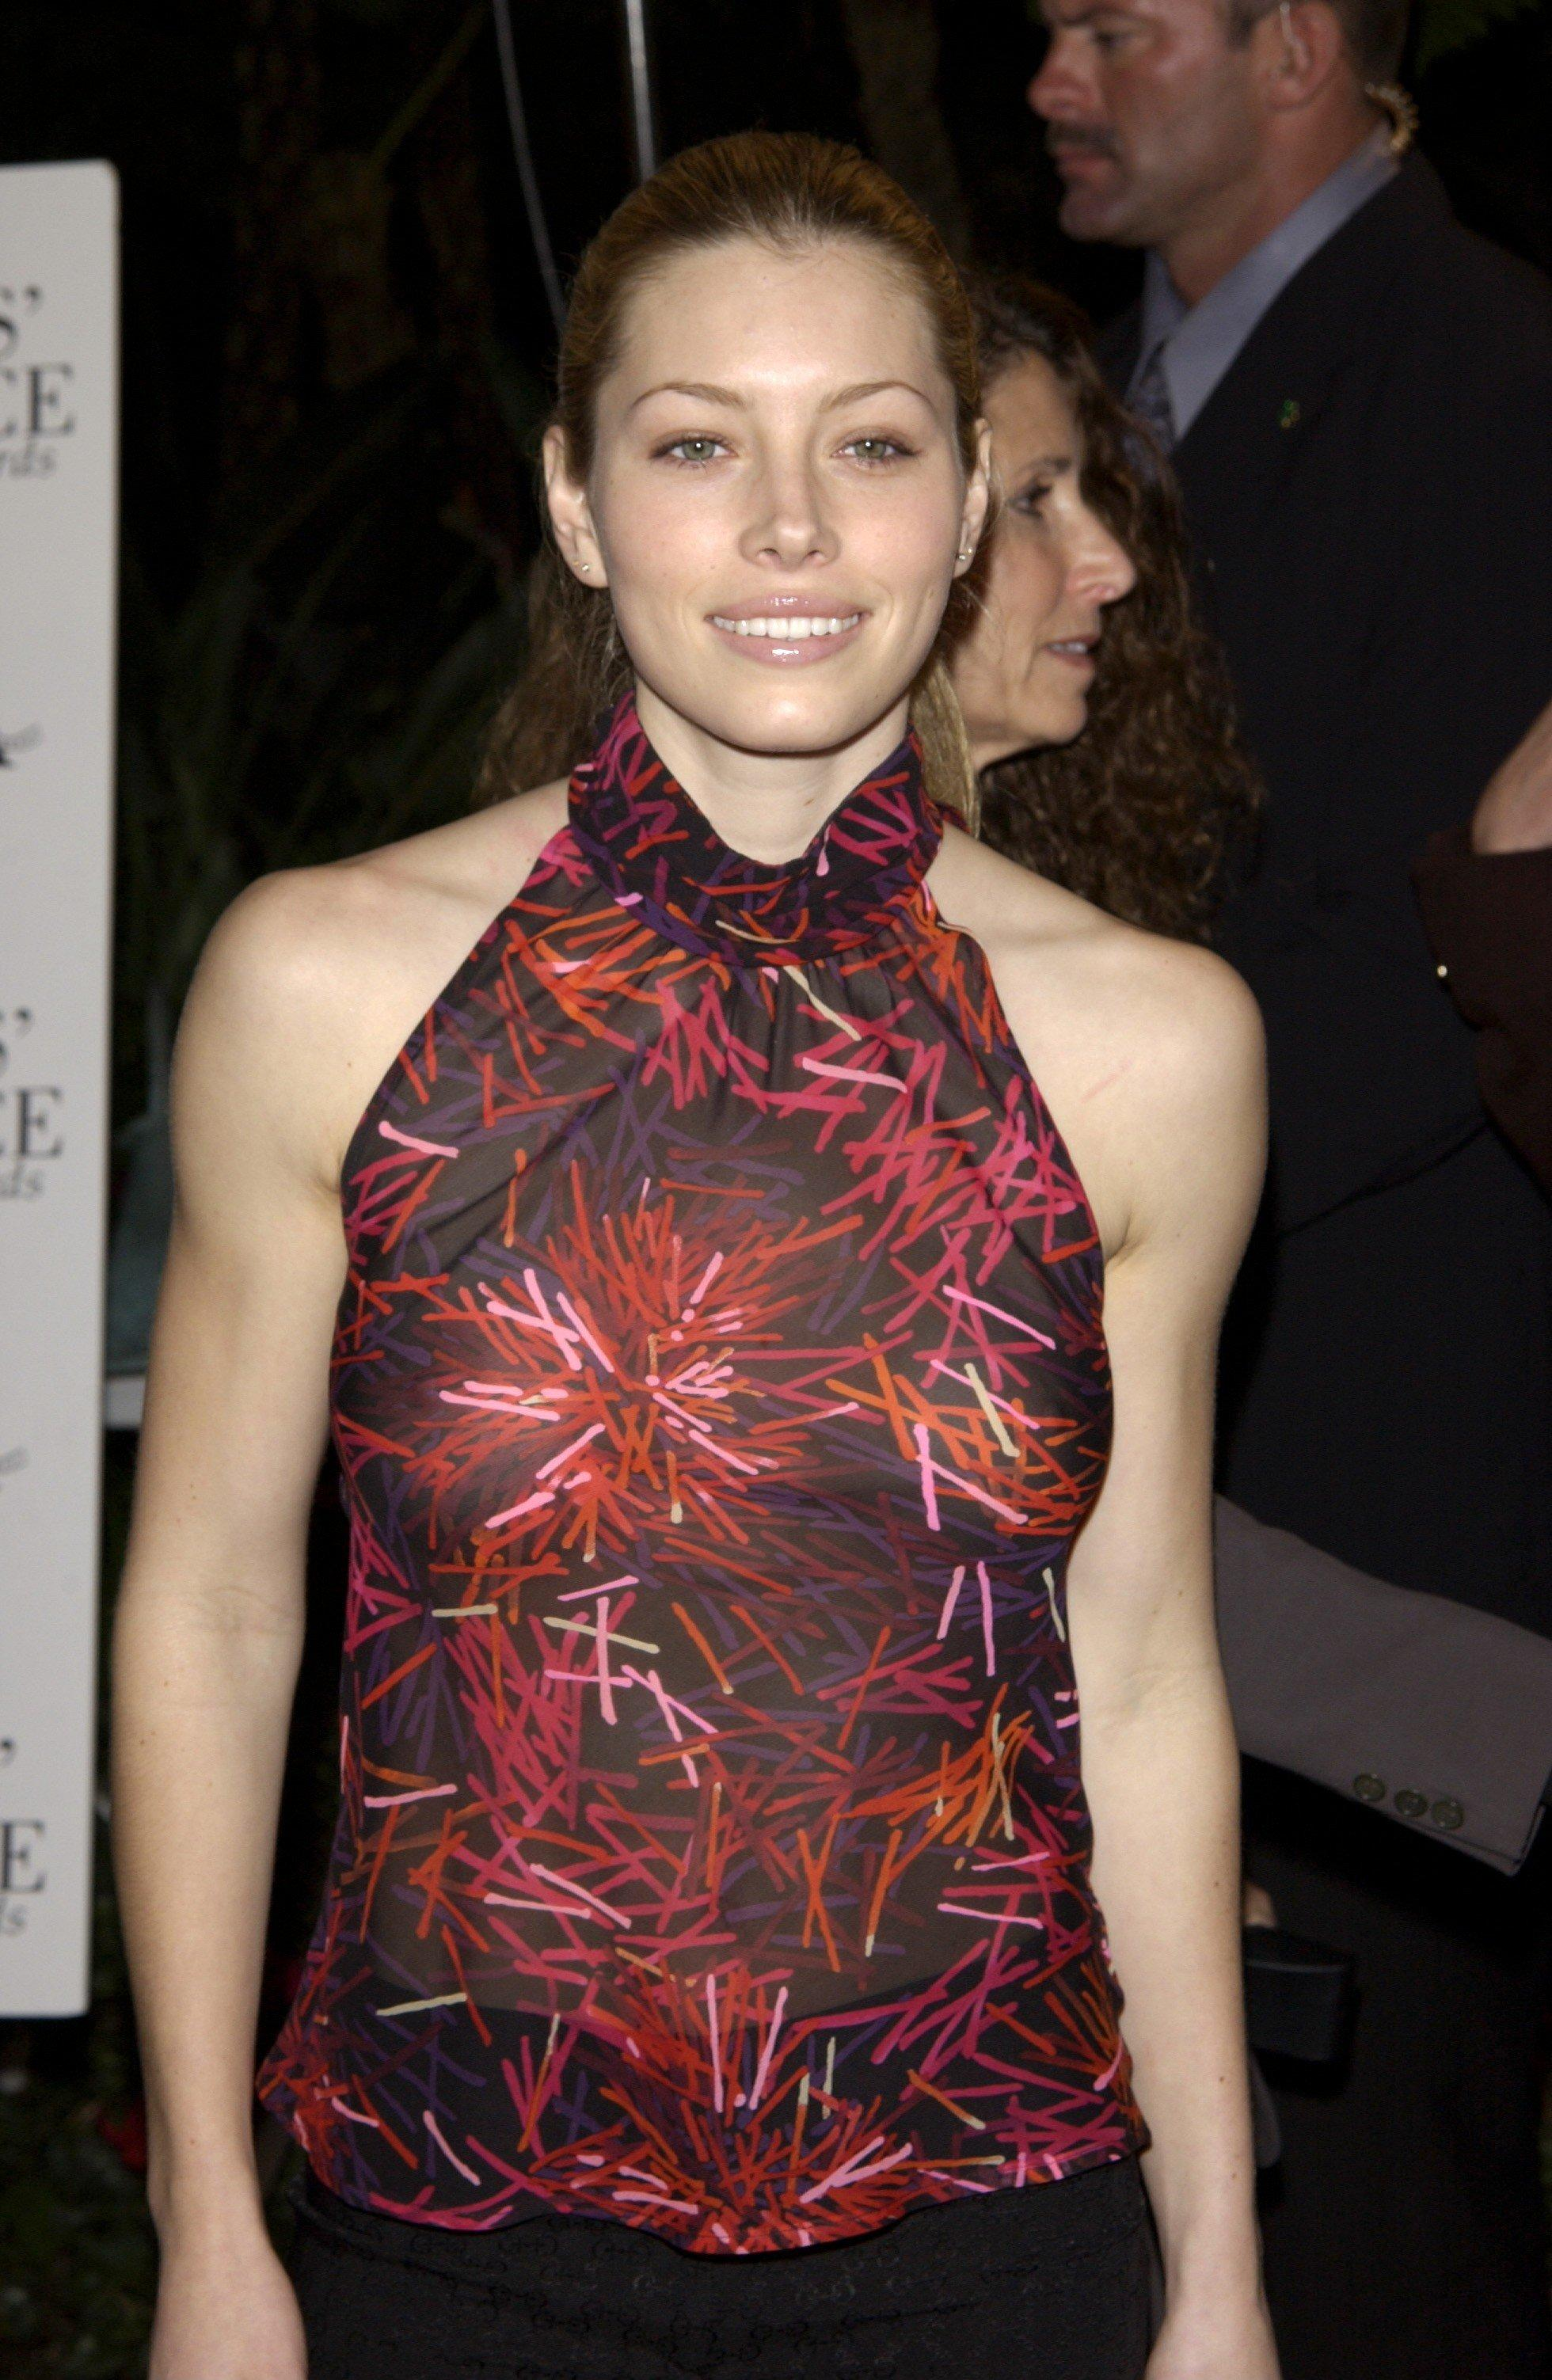 67003_jessica_biel_critics_choice_awards27_122_1044lo.jpg